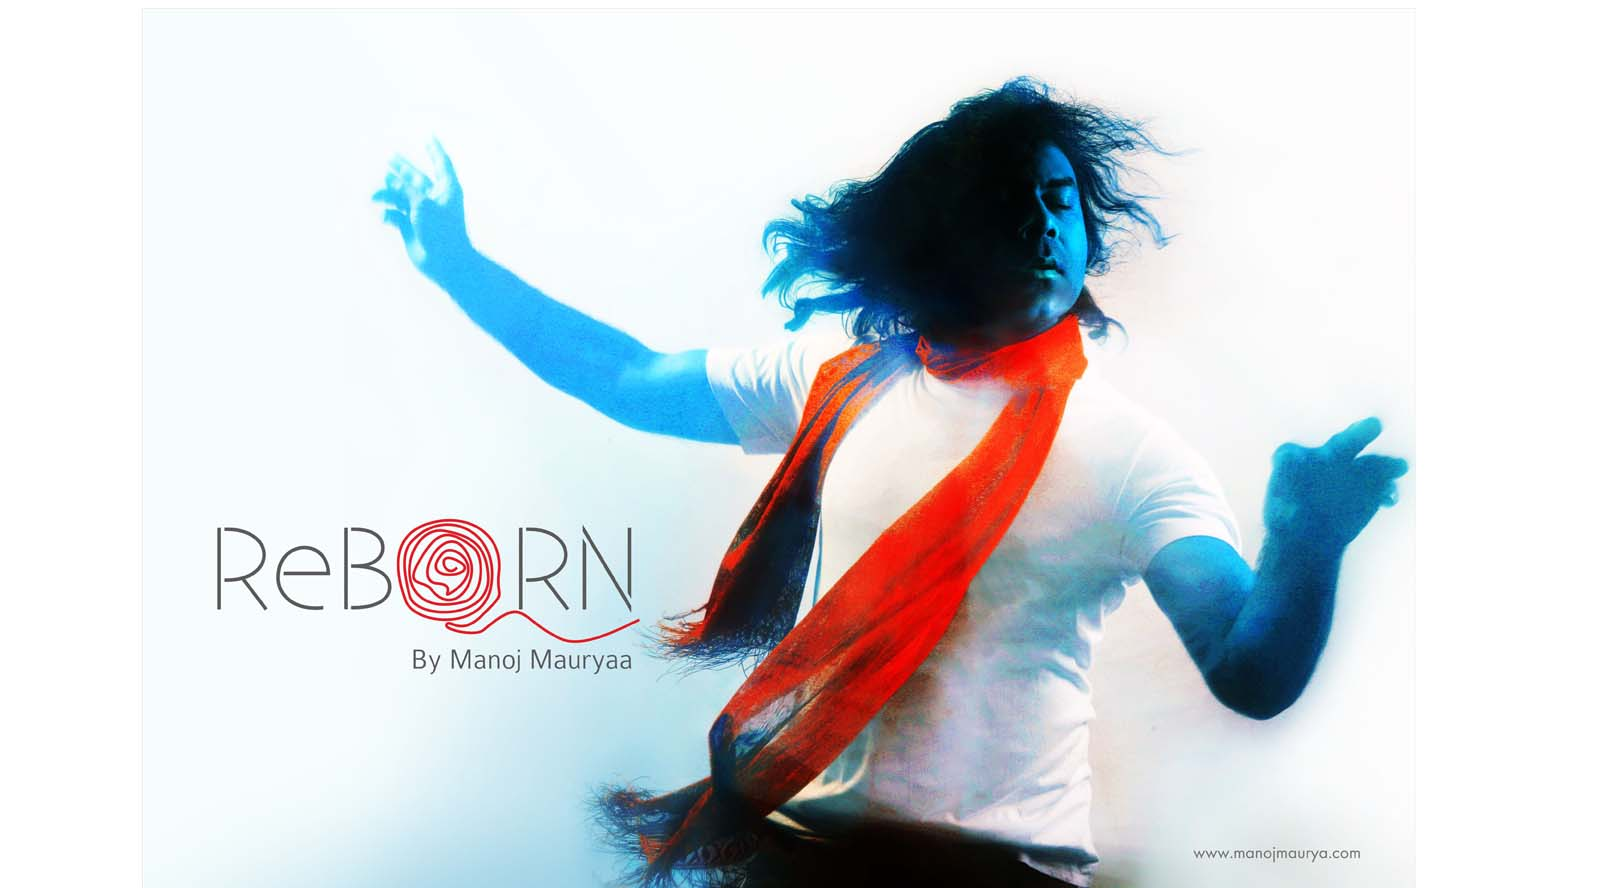 Reborn By Manoj Maurya